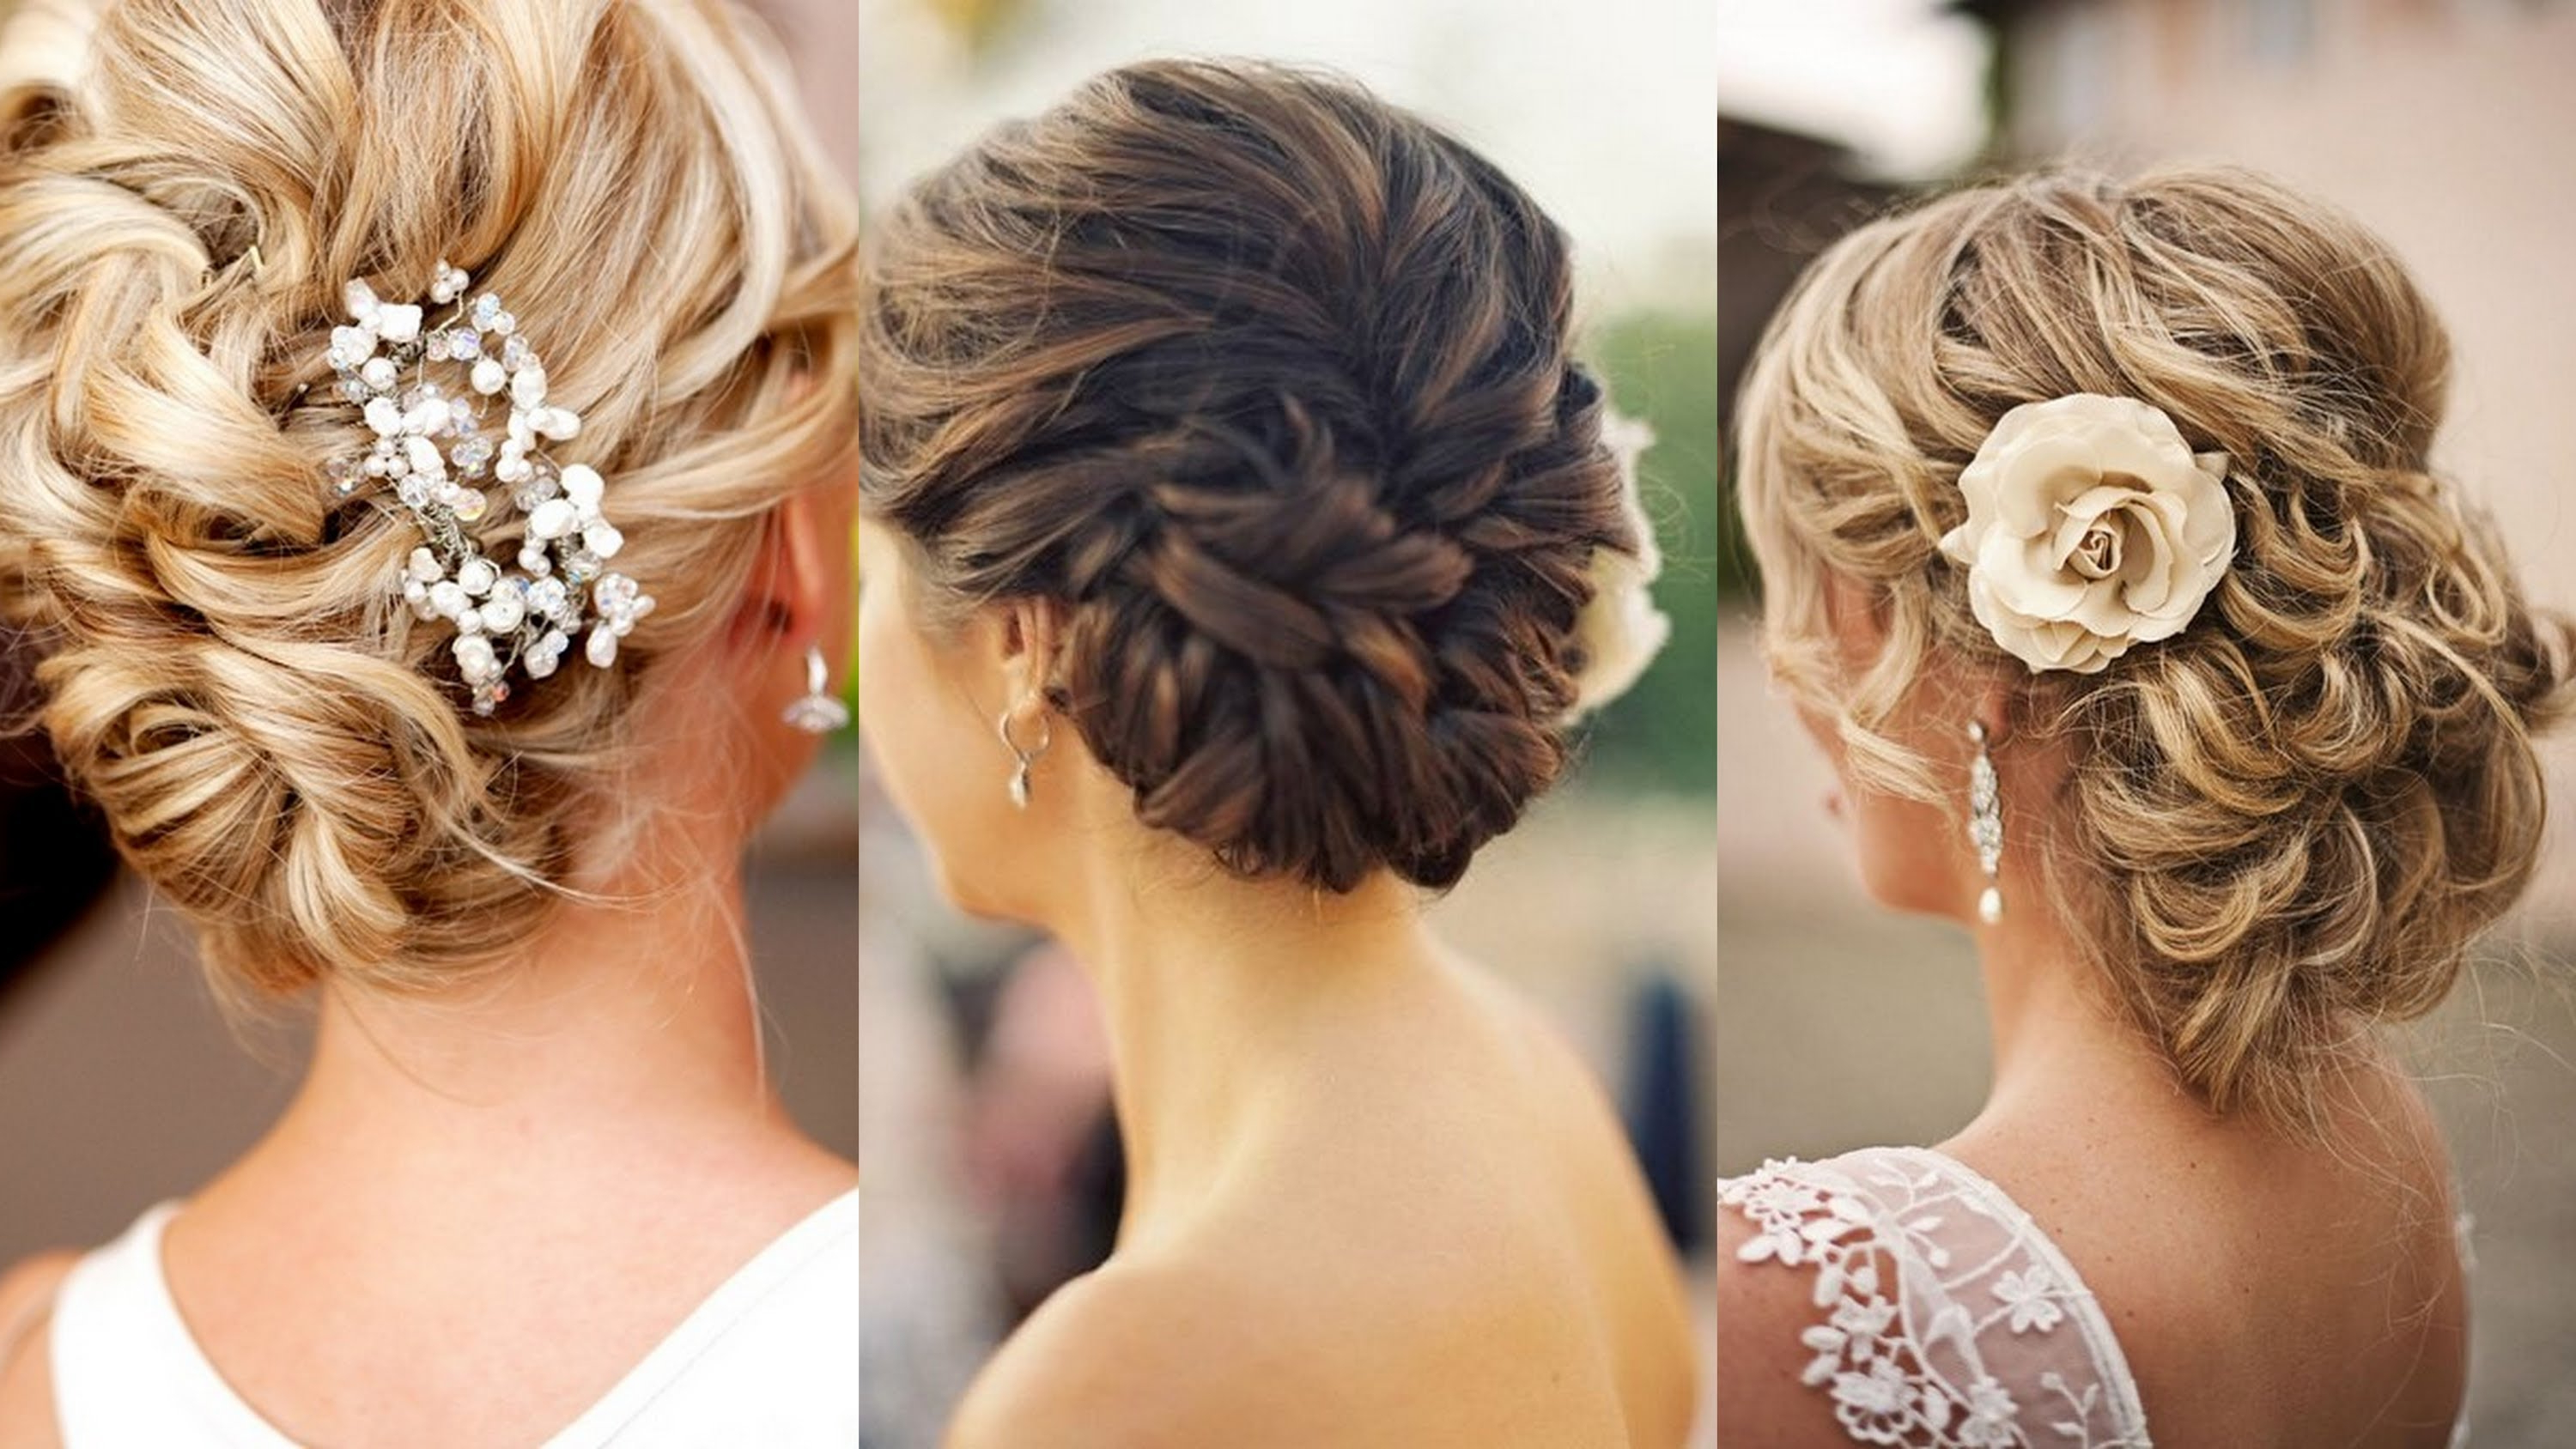 Wedding Hairstyles : Bridesmaid Hairstyle For Long Hair Half Updos For Most Up To Date Medium Hairstyles For Weddings For Bridesmaids (View 18 of 20)